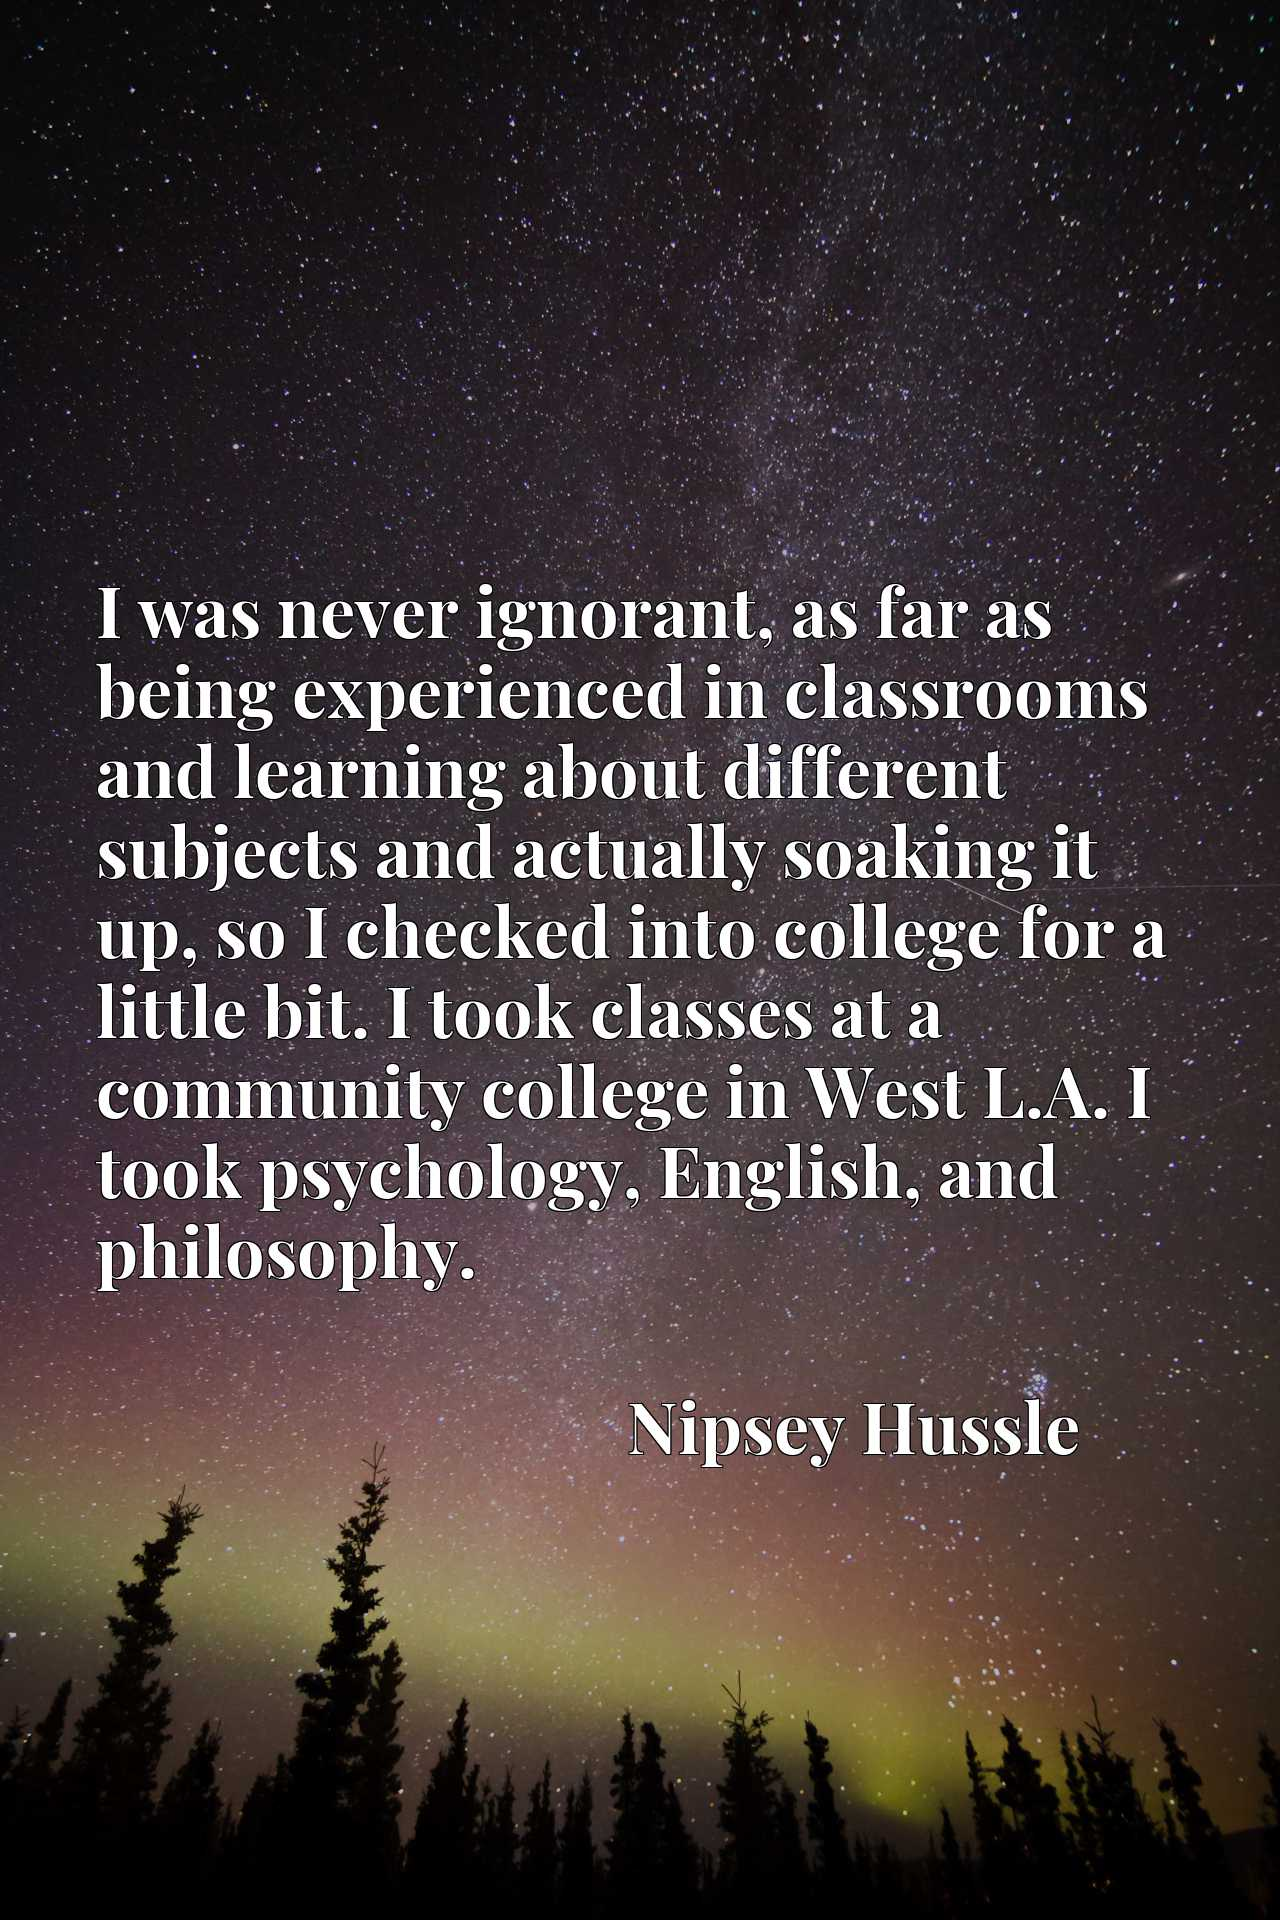 I was never ignorant, as far as being experienced in classrooms and learning about different subjects and actually soaking it up, so I checked into college for a little bit. I took classes at a community college in West L.A. I took psychology, English, and philosophy.